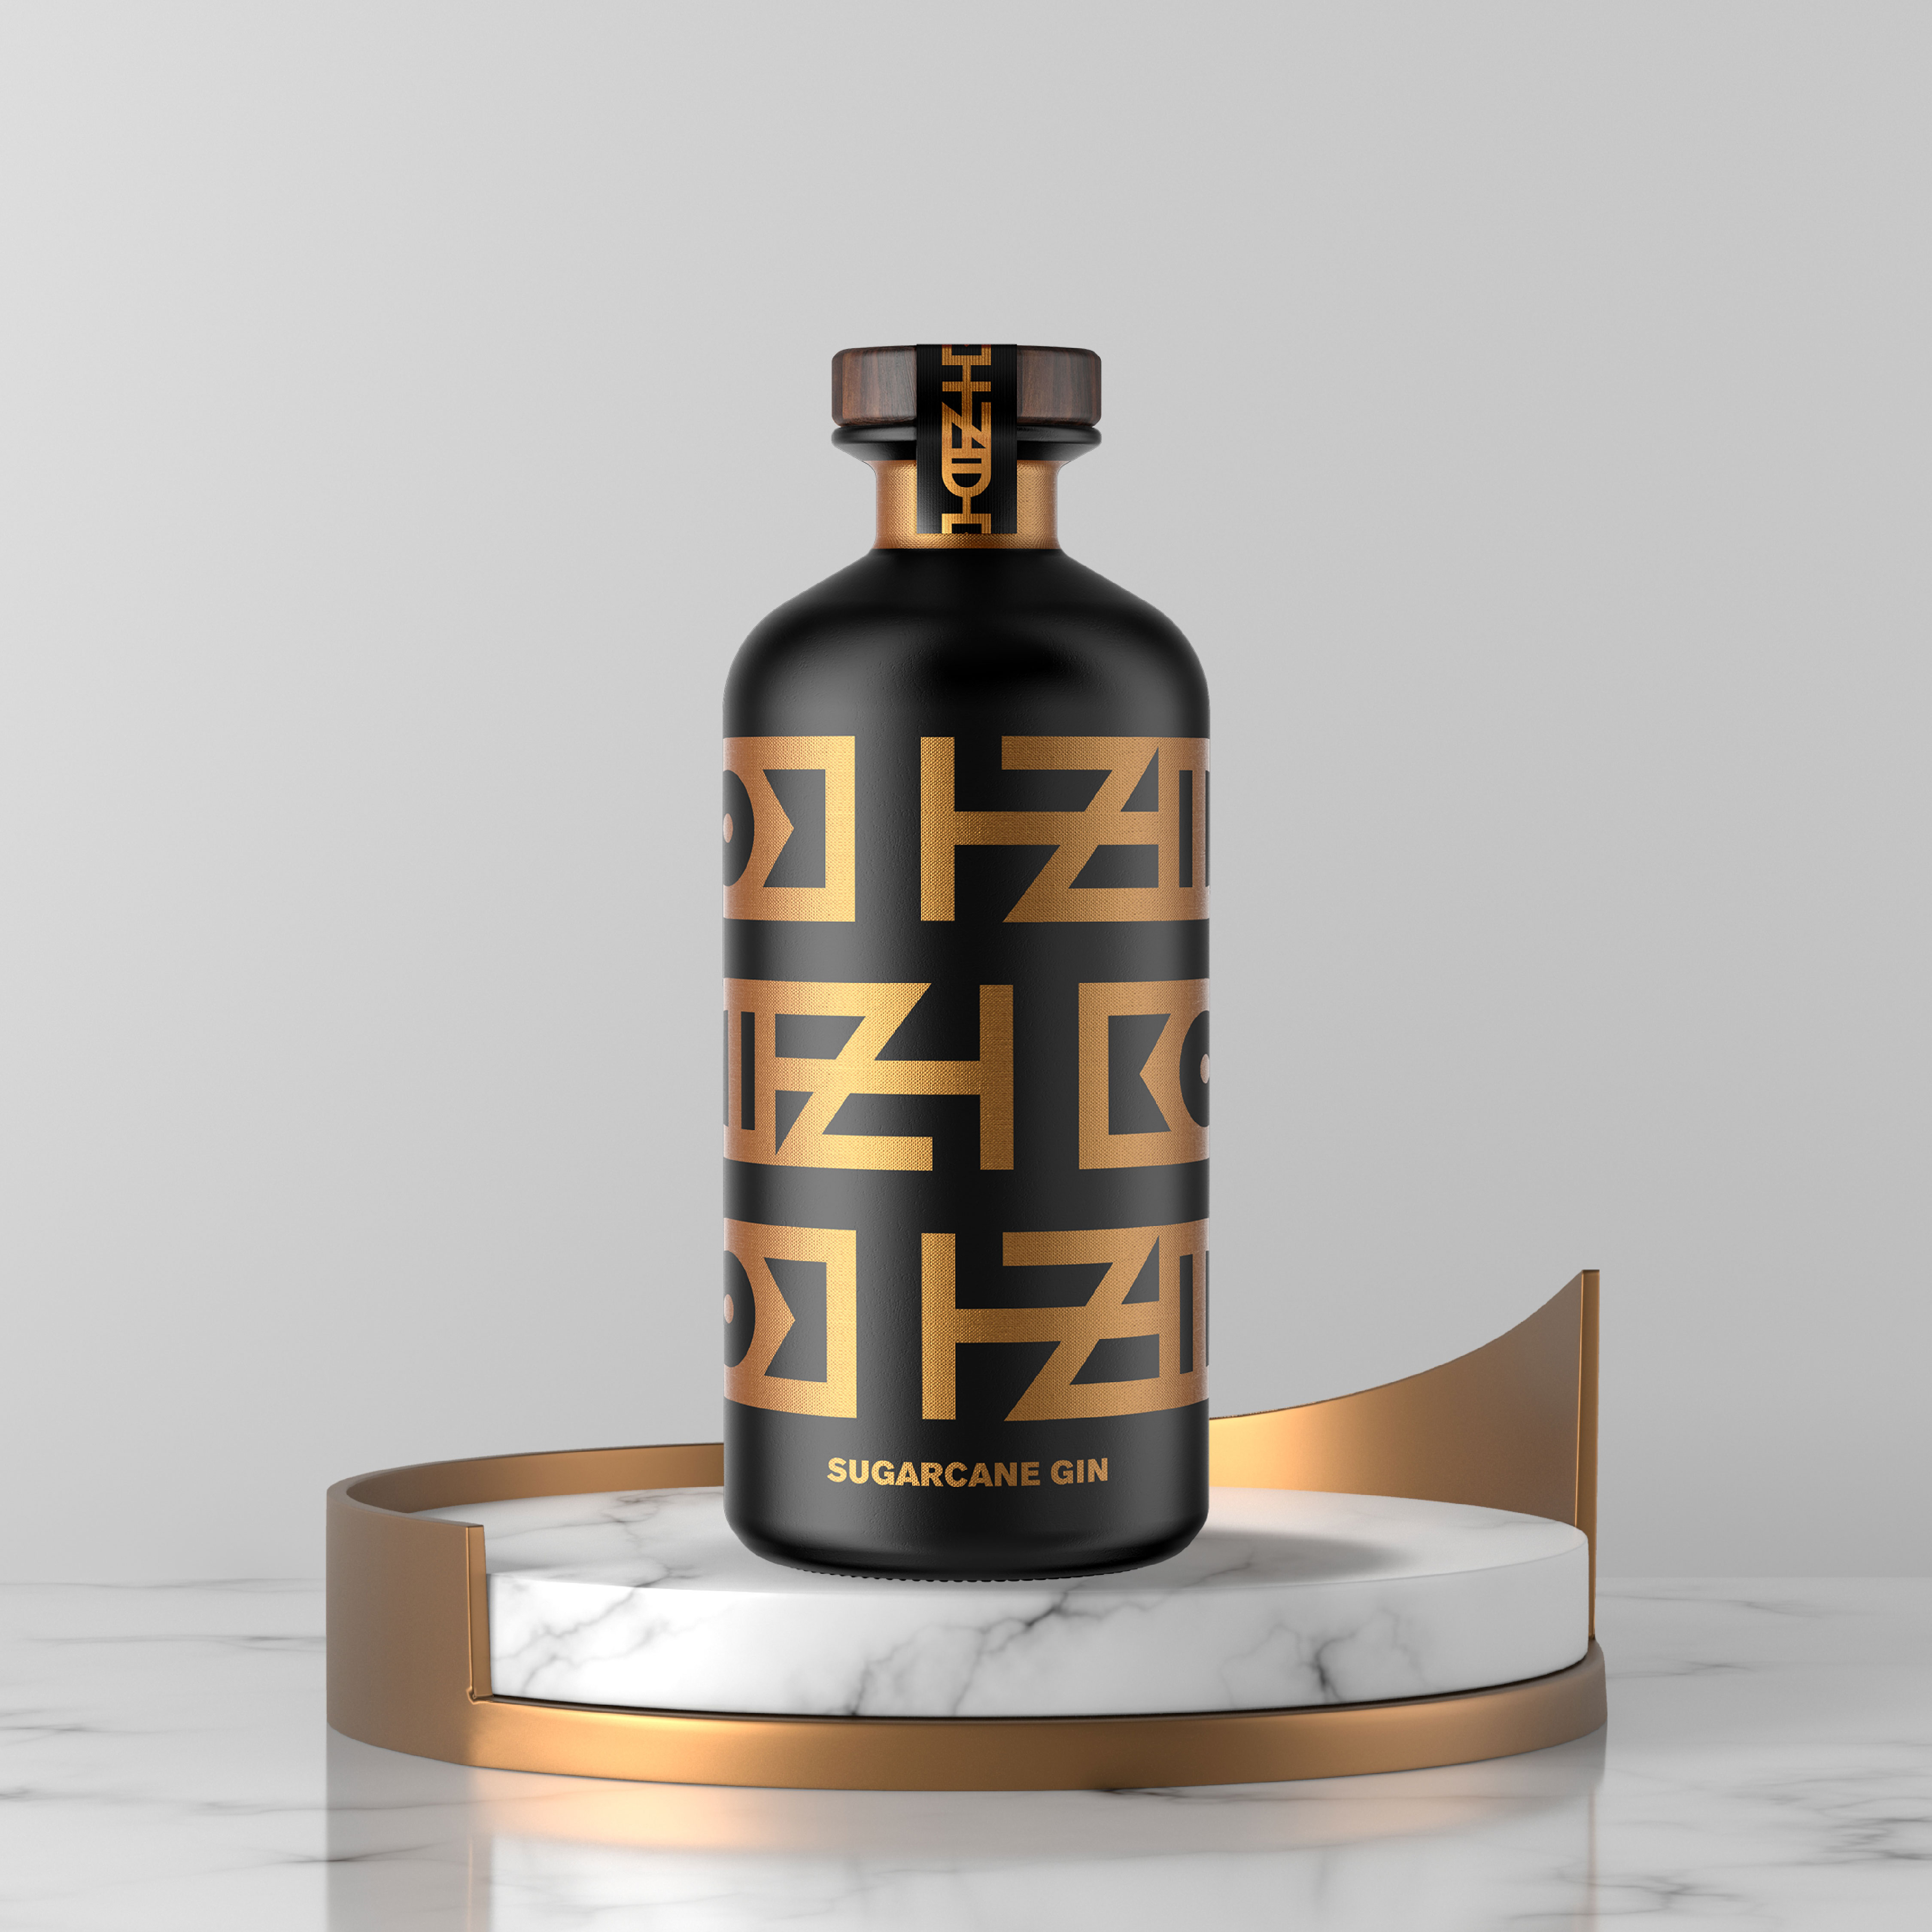 Mister Wyets Create Packaging Design for Premium African Sugarcane Gin